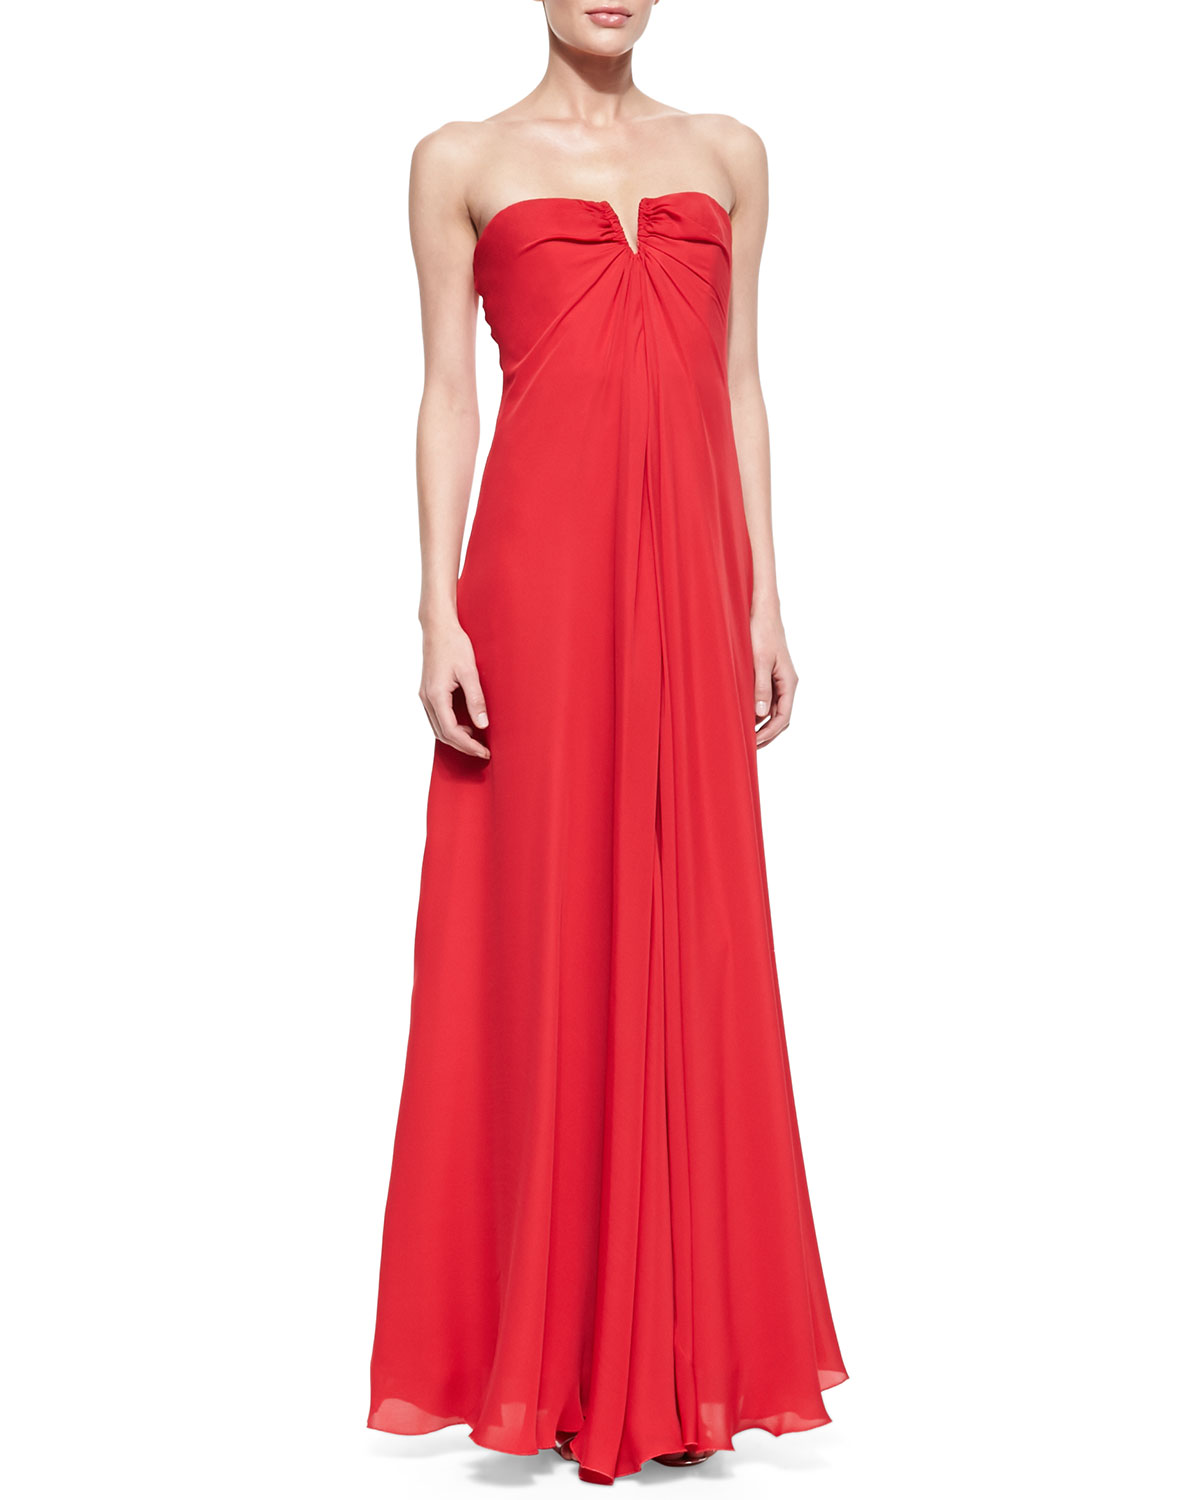 Womens Strapless Drape Front Gown   Nicole Miller   Brink pink (0)